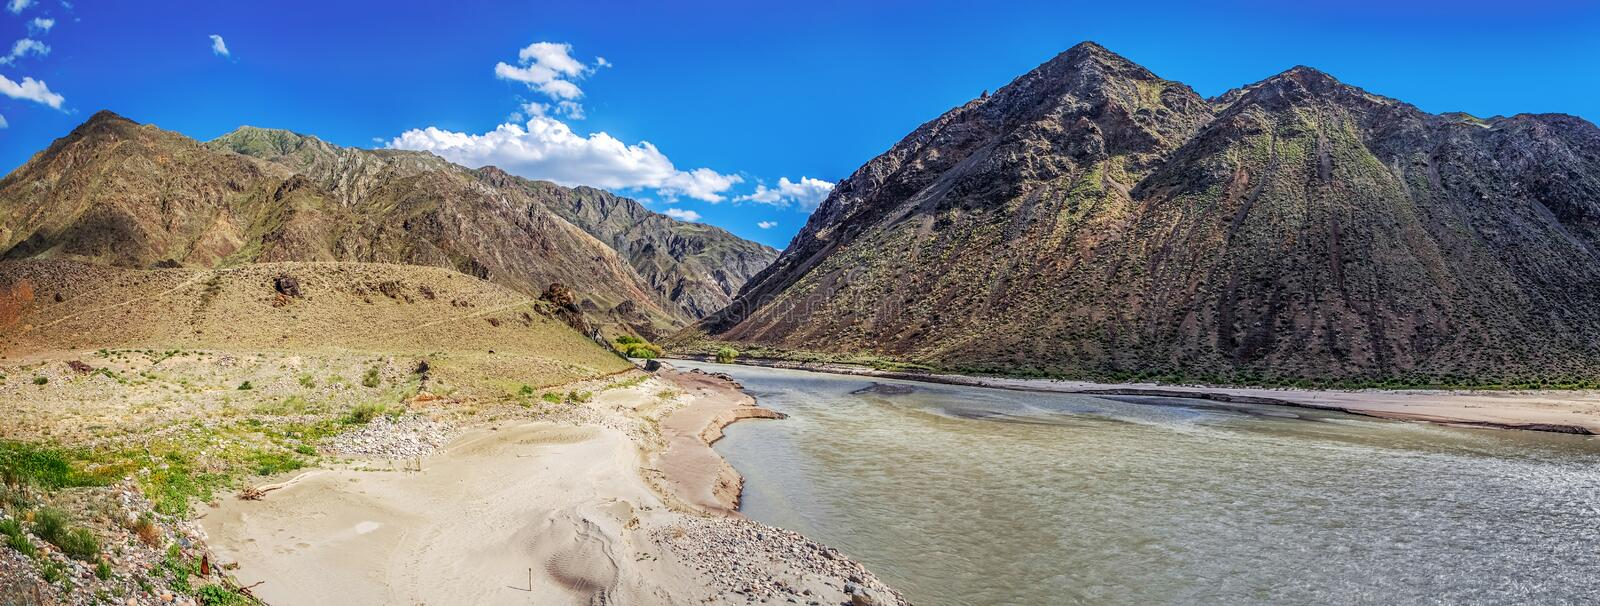 Chilik River on the Assy mountain plateau. Kazakhstan. stock photo